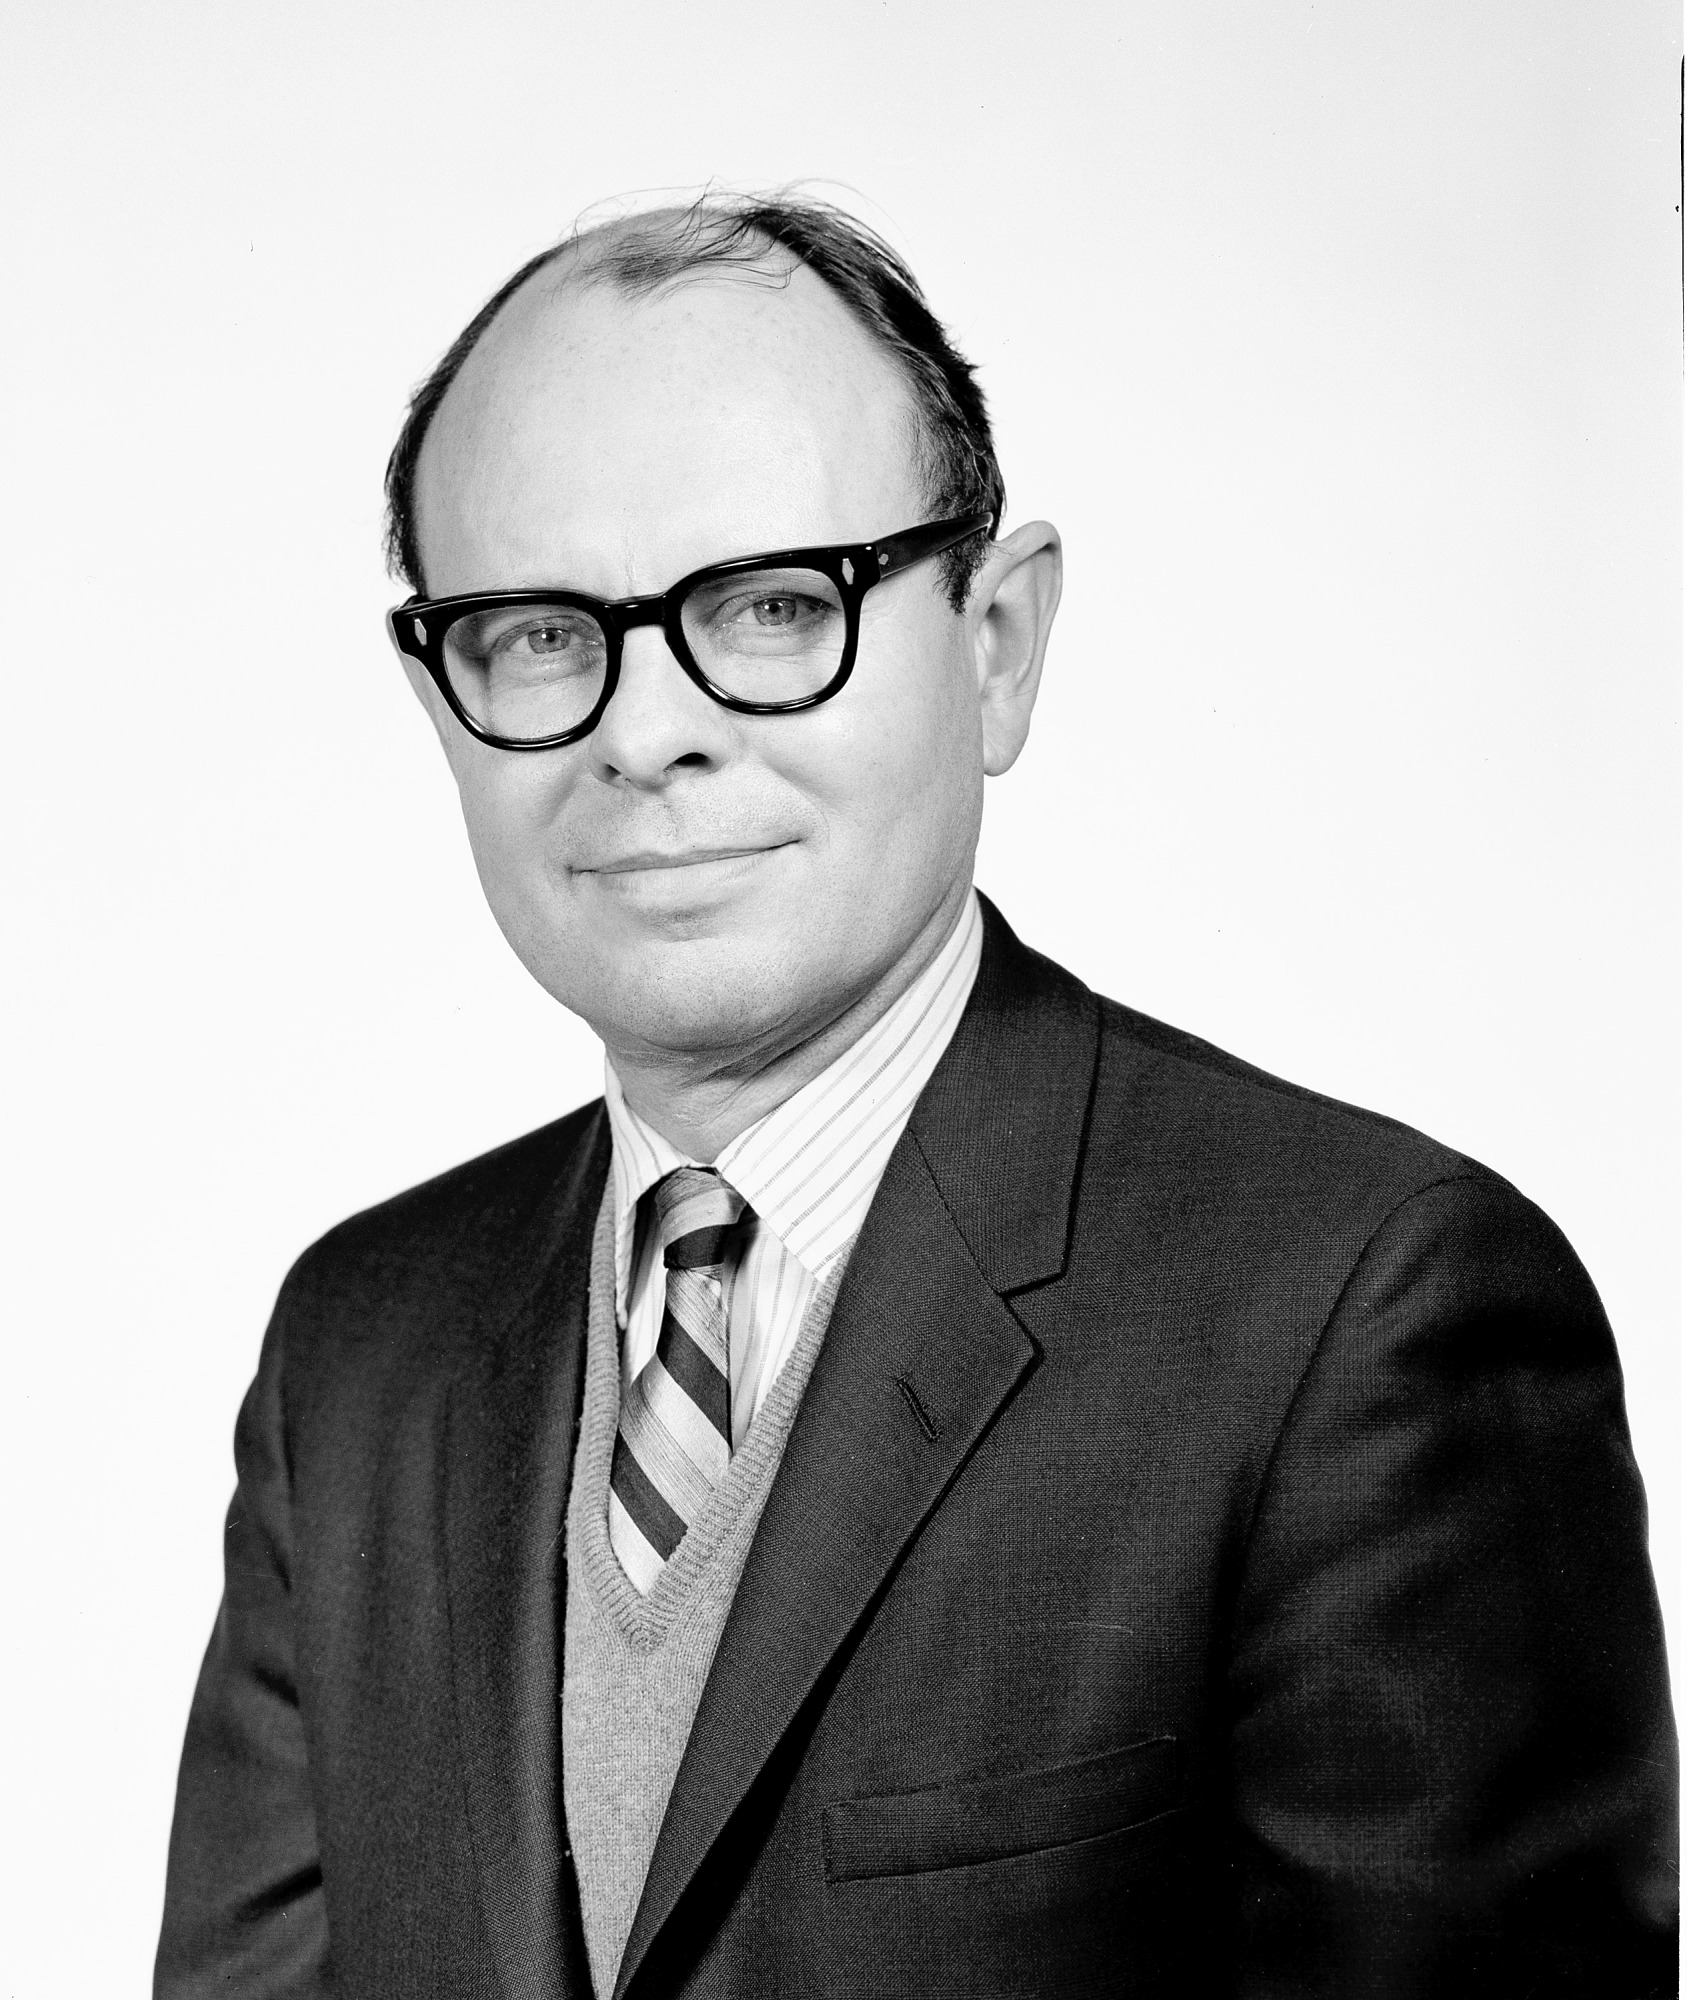 Robert P. Multhauf, by Unknown, c. 1970, Smithsonian Archives - History Div, MAH64181.